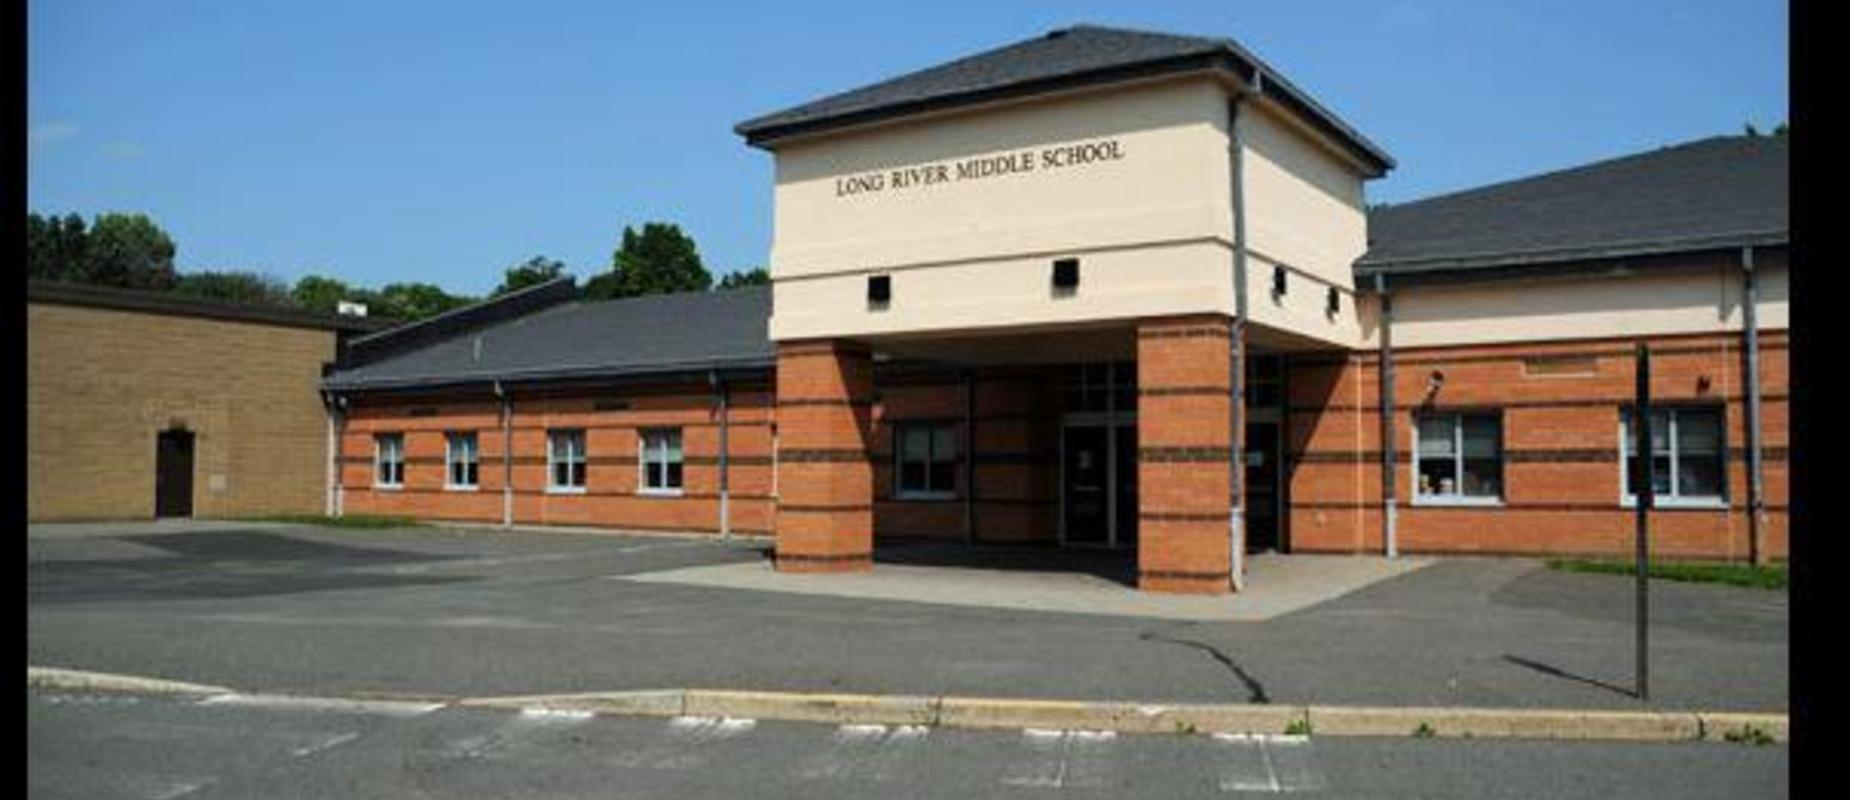 Image of Long River Middle School